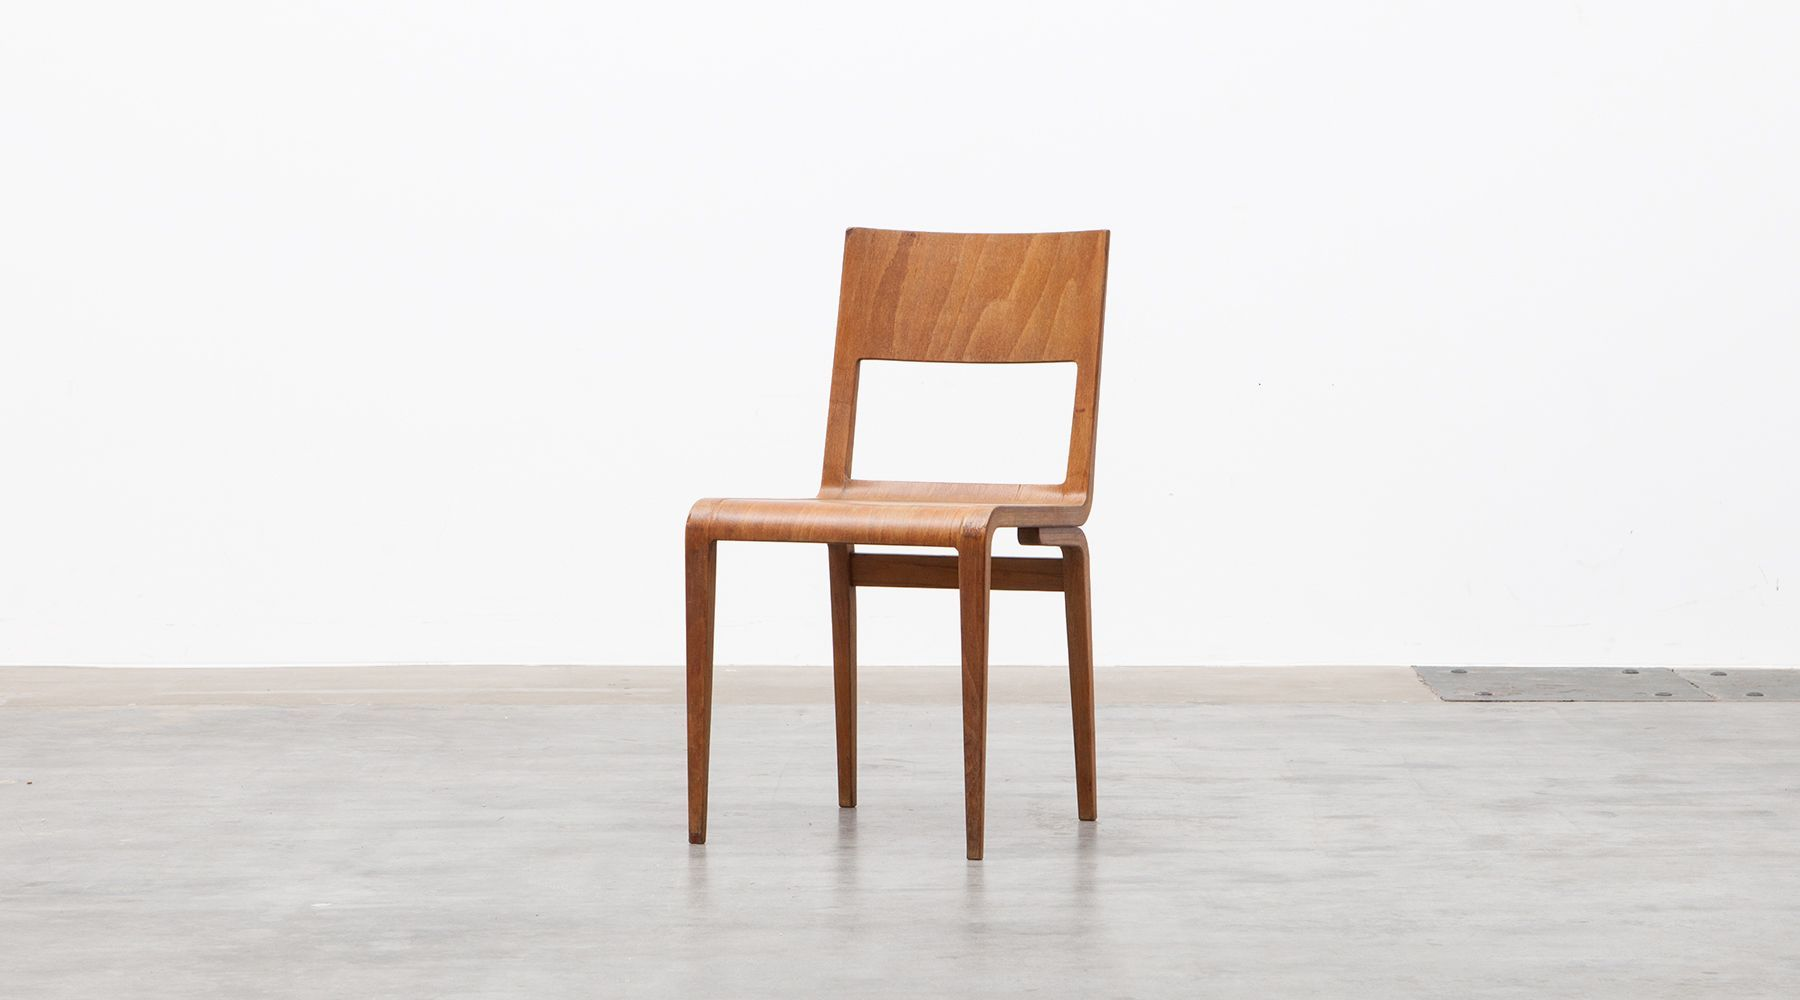 Plywood chair (a)